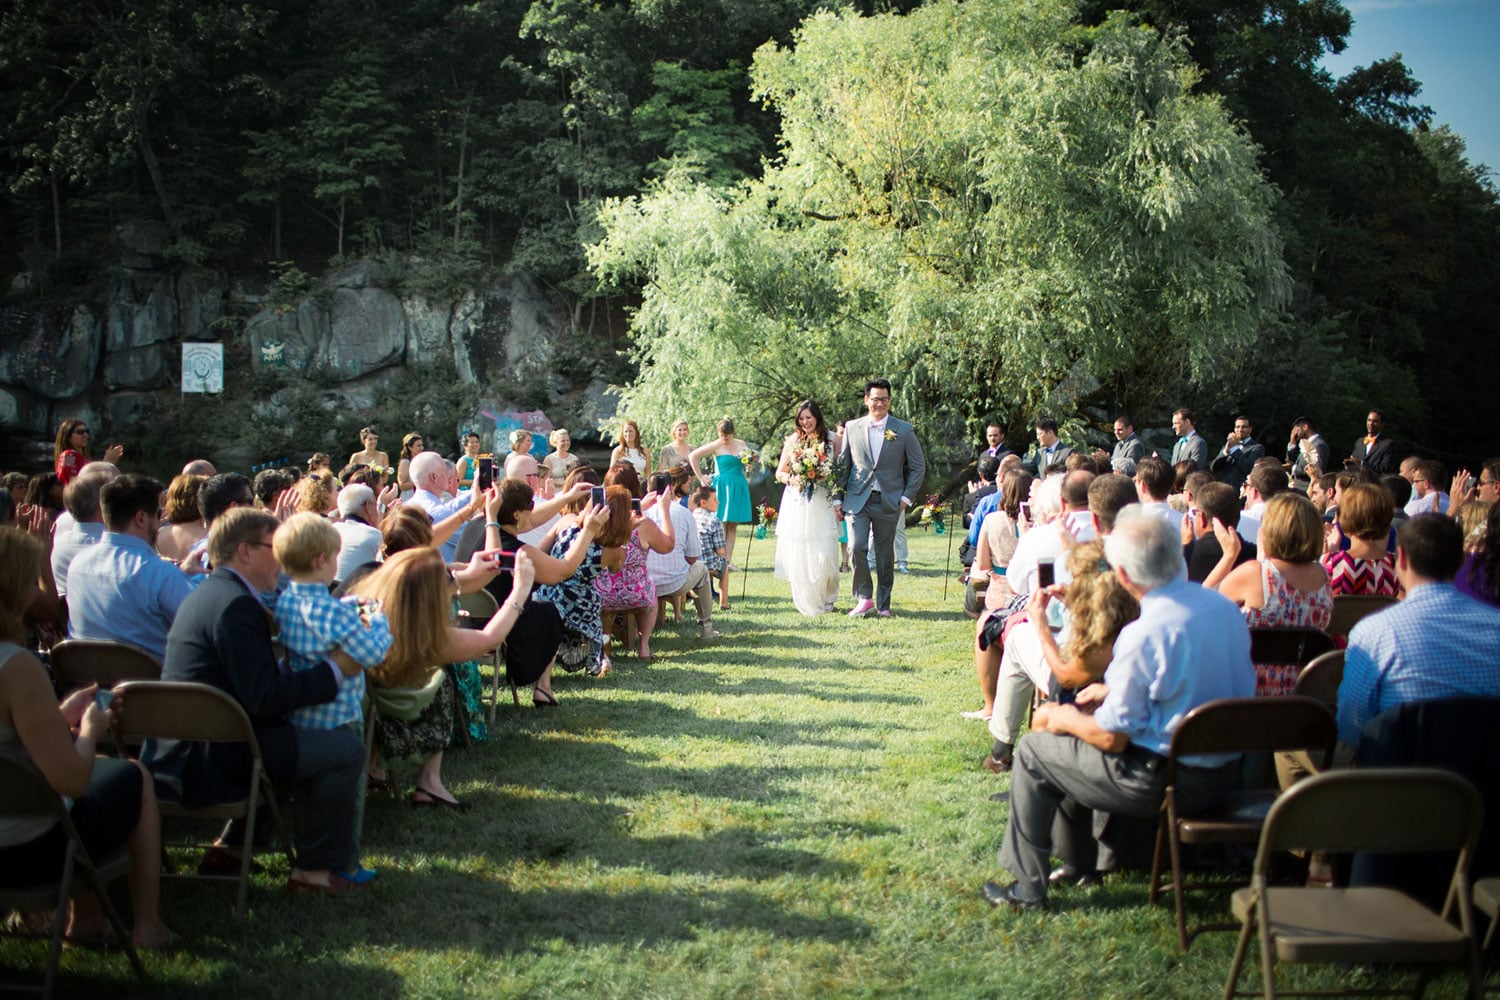 Lakeside ceremony at summer camp wedding in Pennsylvania at Camp Green Lane in the Poconos | Wedding planner: Heart & Dash | Photo: Jessica Osber Photography